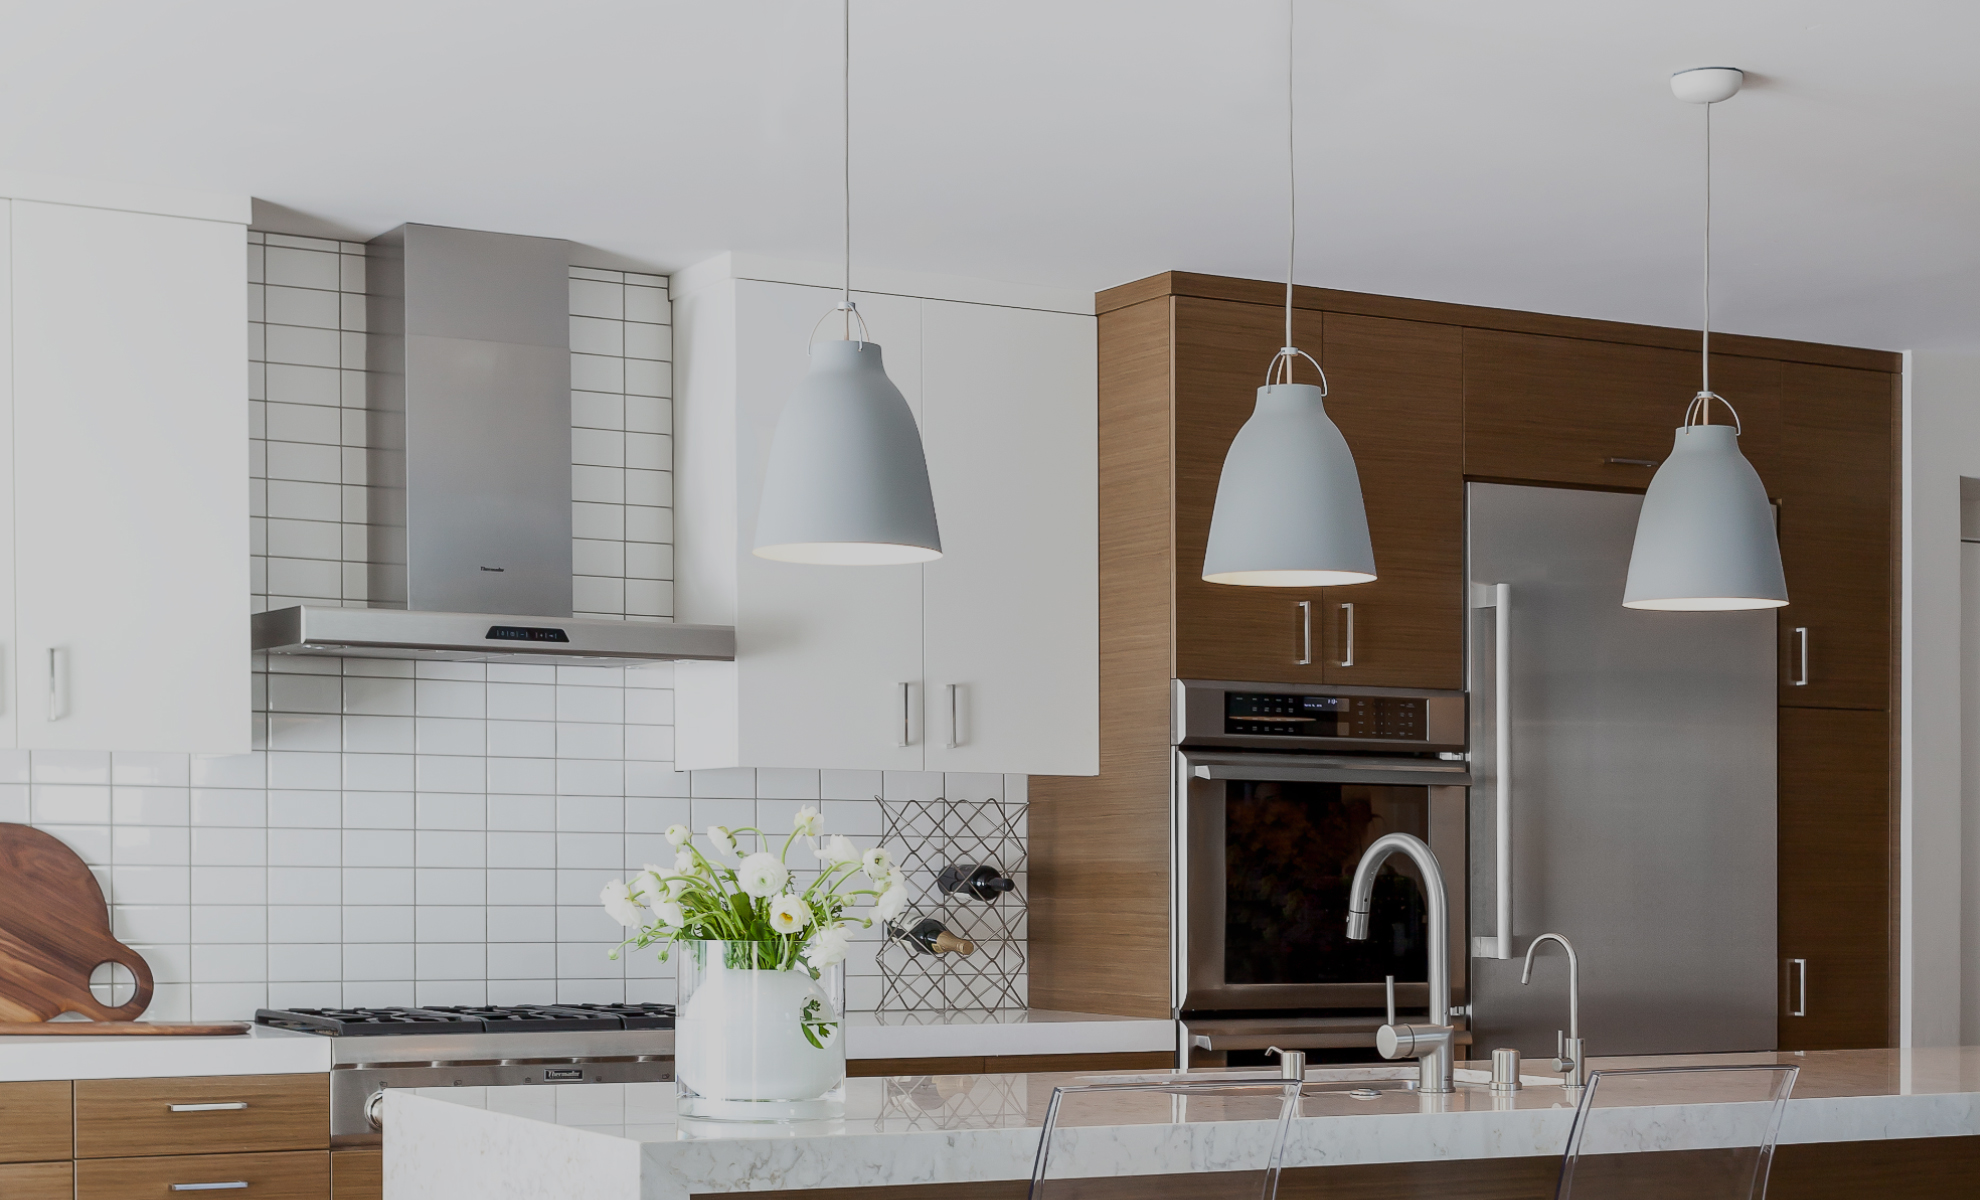 kitchen pendant lighting buyeru0027s guide: how to choose track and monorail lighting NRJTRMT